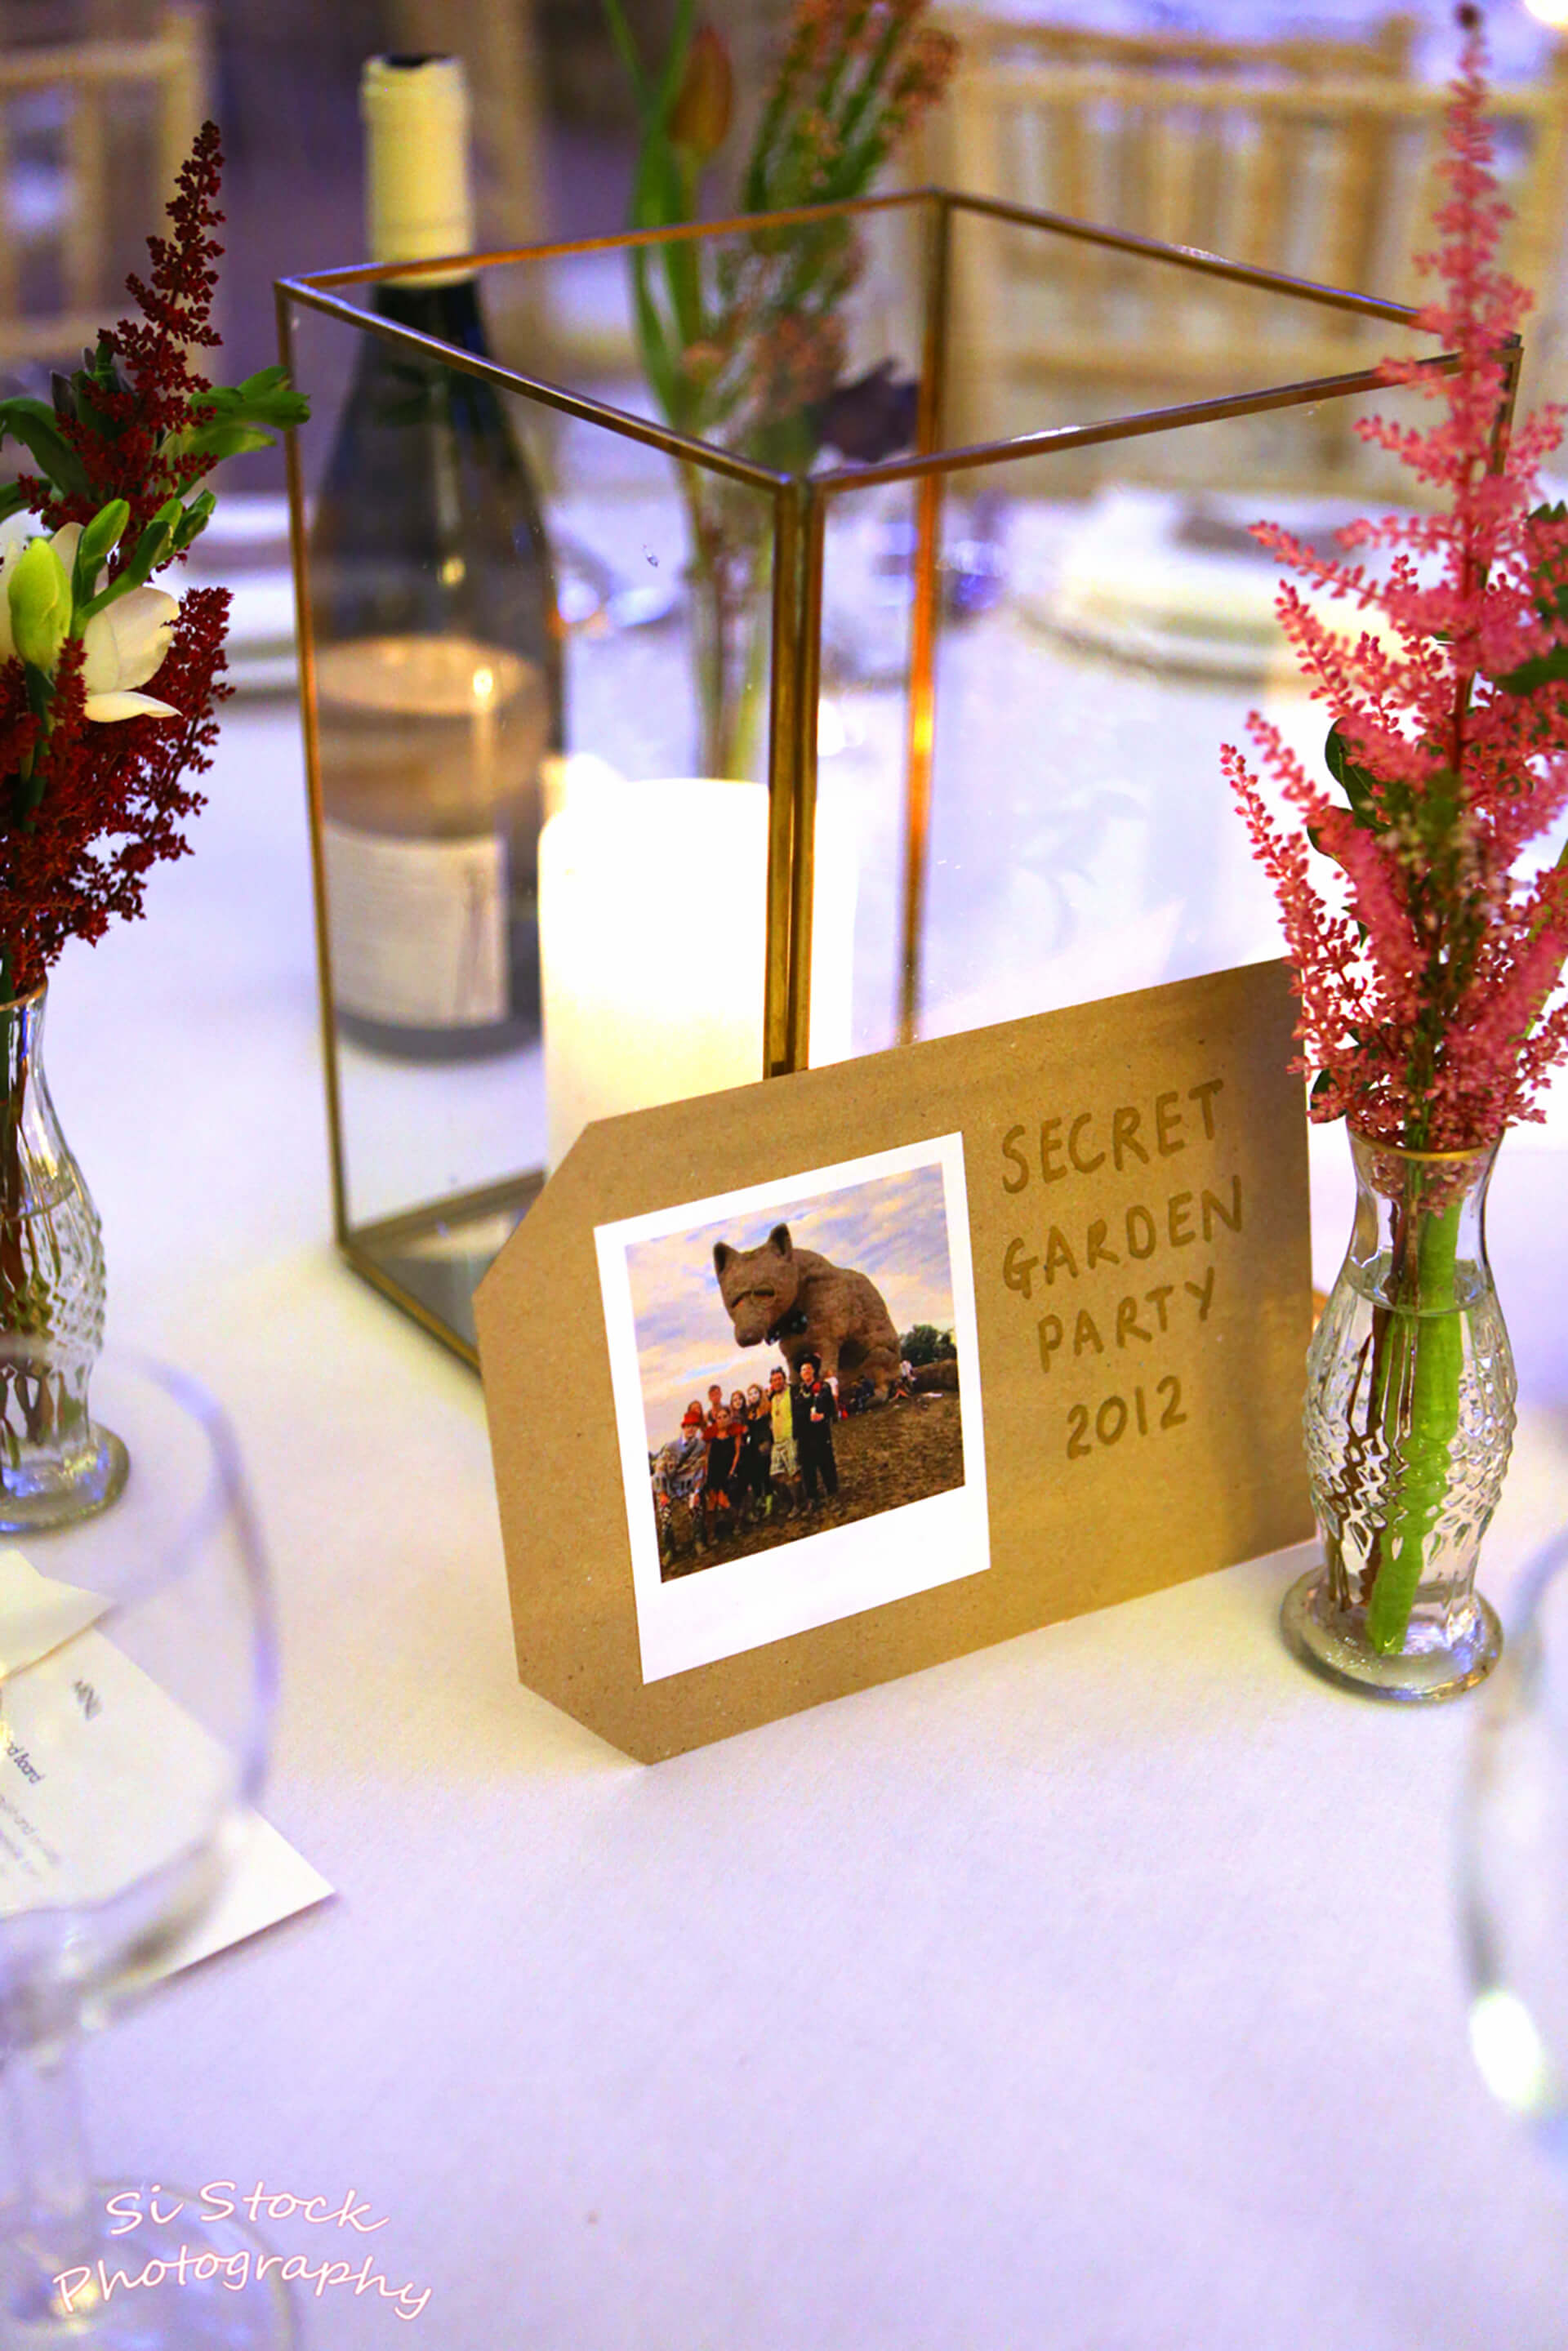 Claire and John's favourite experiences together named each table. Photo by Simon Stock.